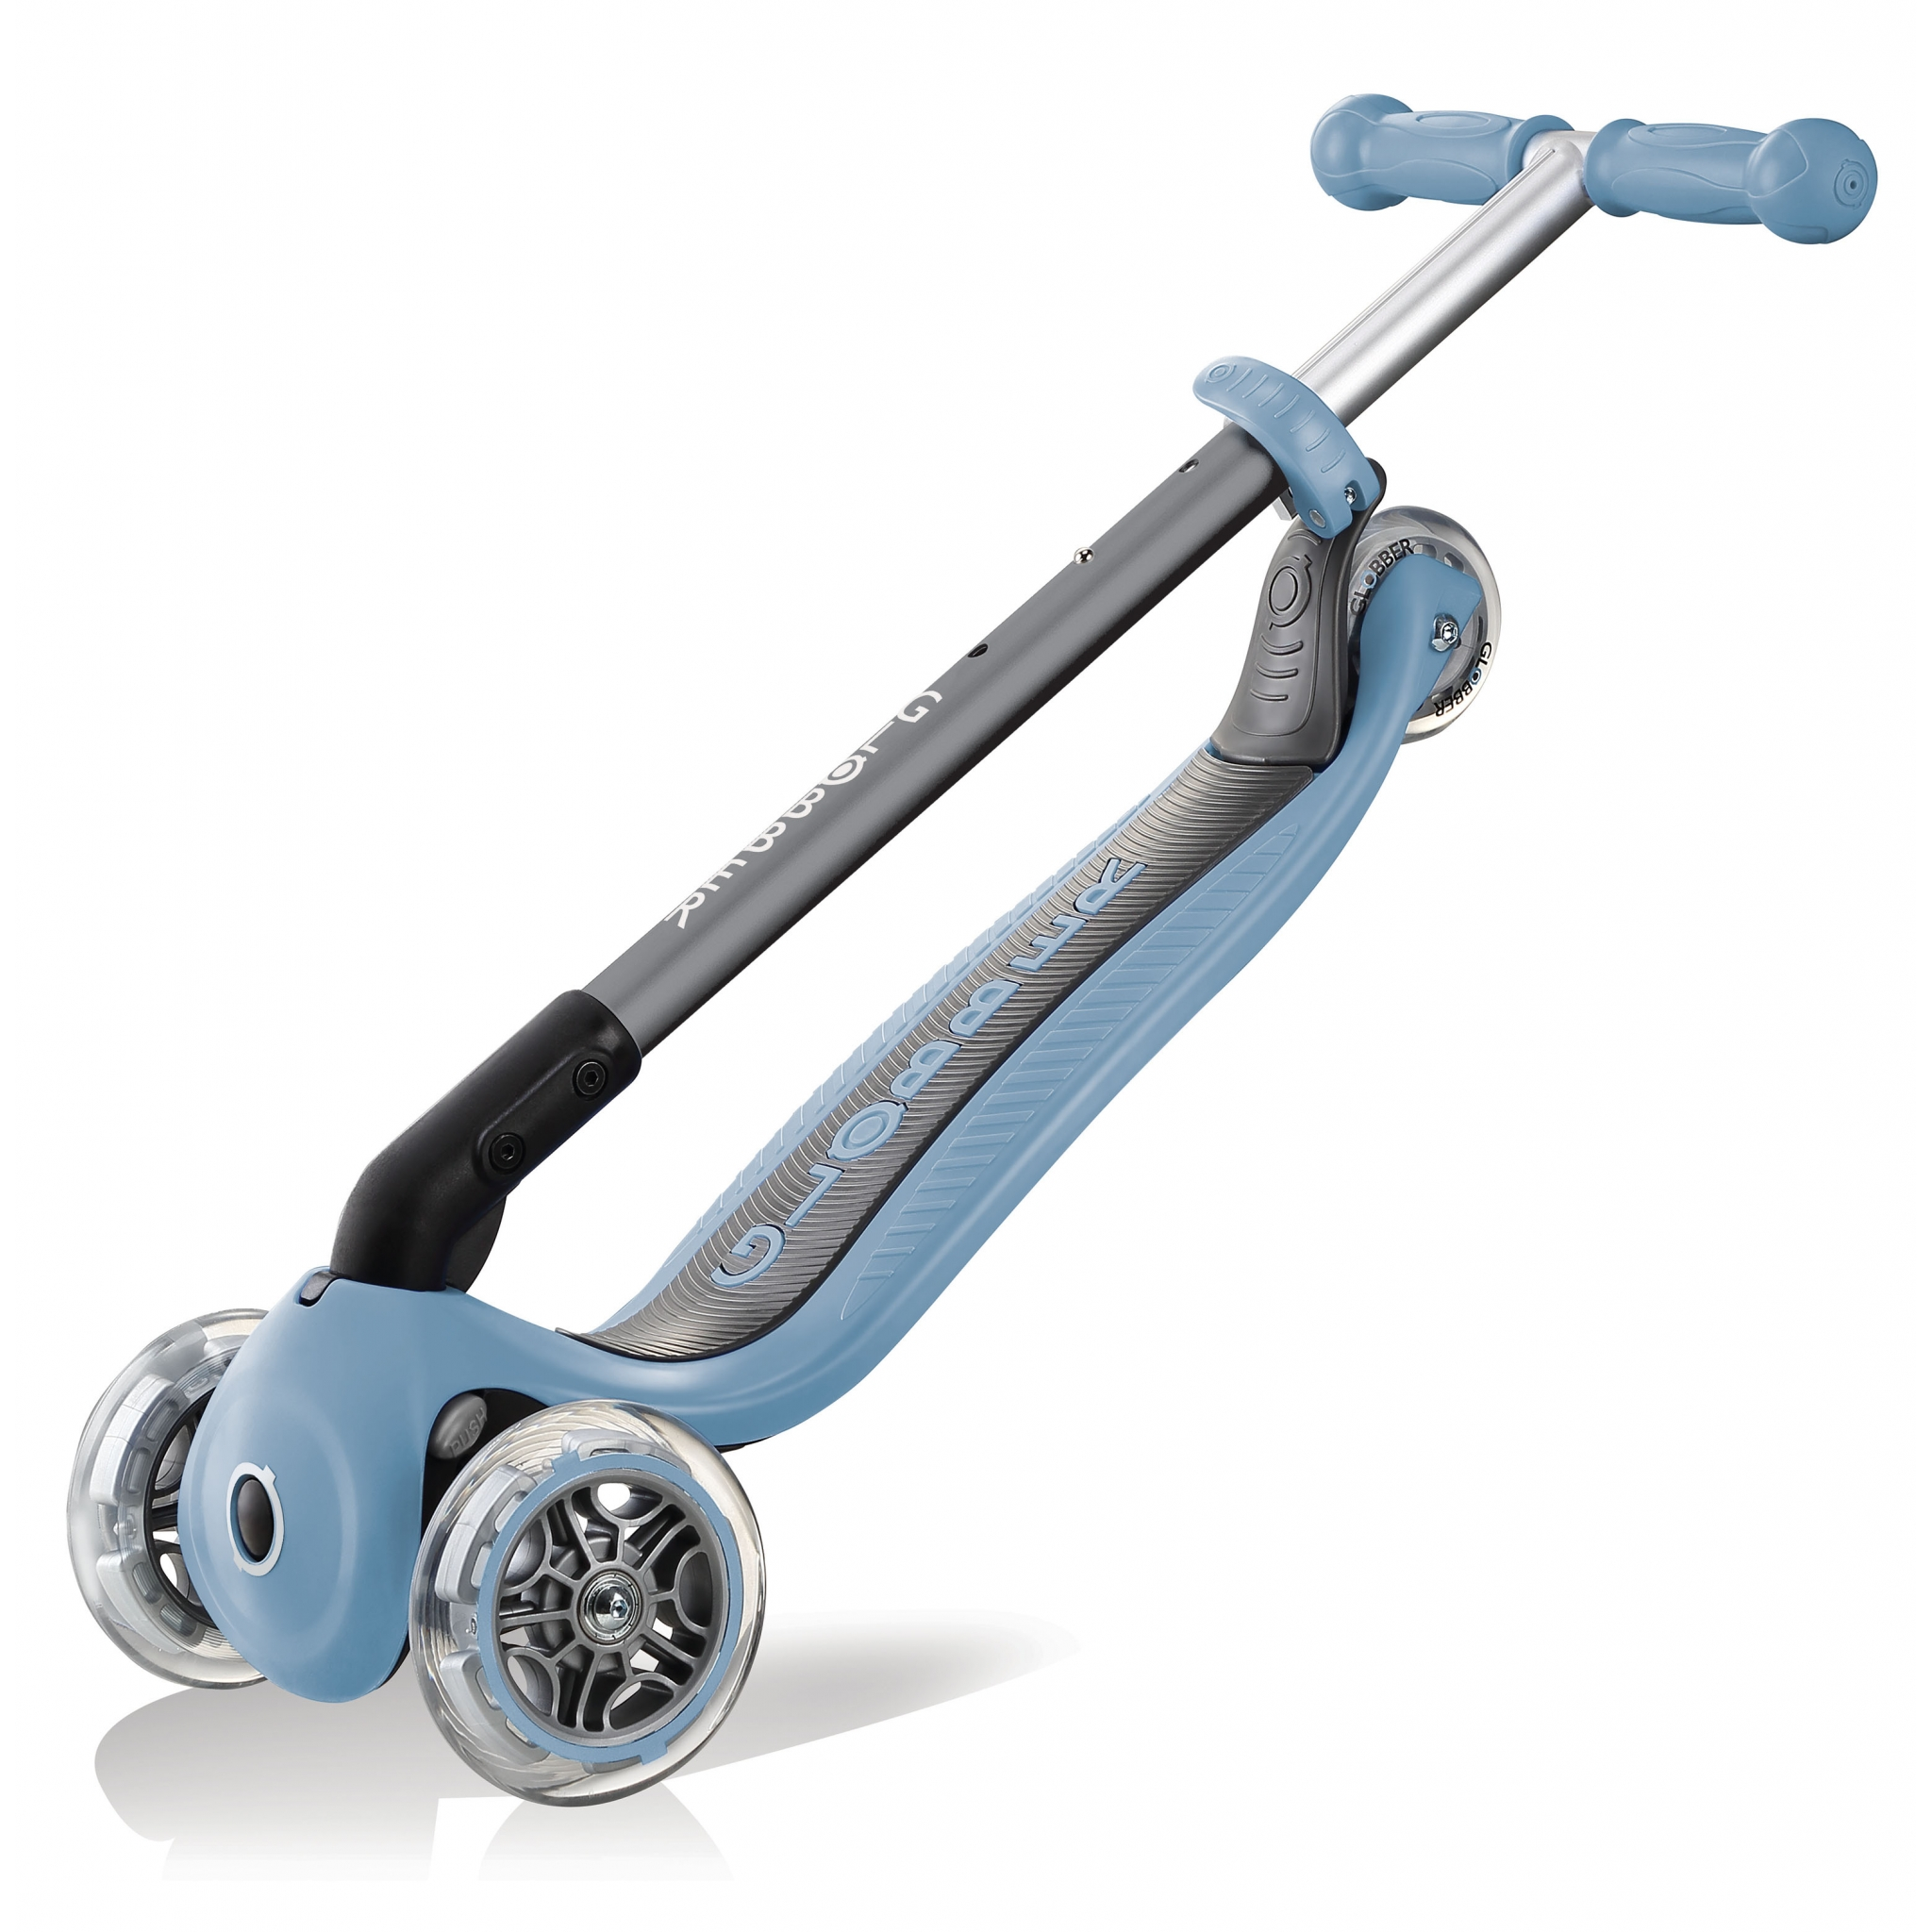 PRIMO-FOLDABLE-3-wheel-foldable-scooter-for-kids-trolley-mode-ash-blue